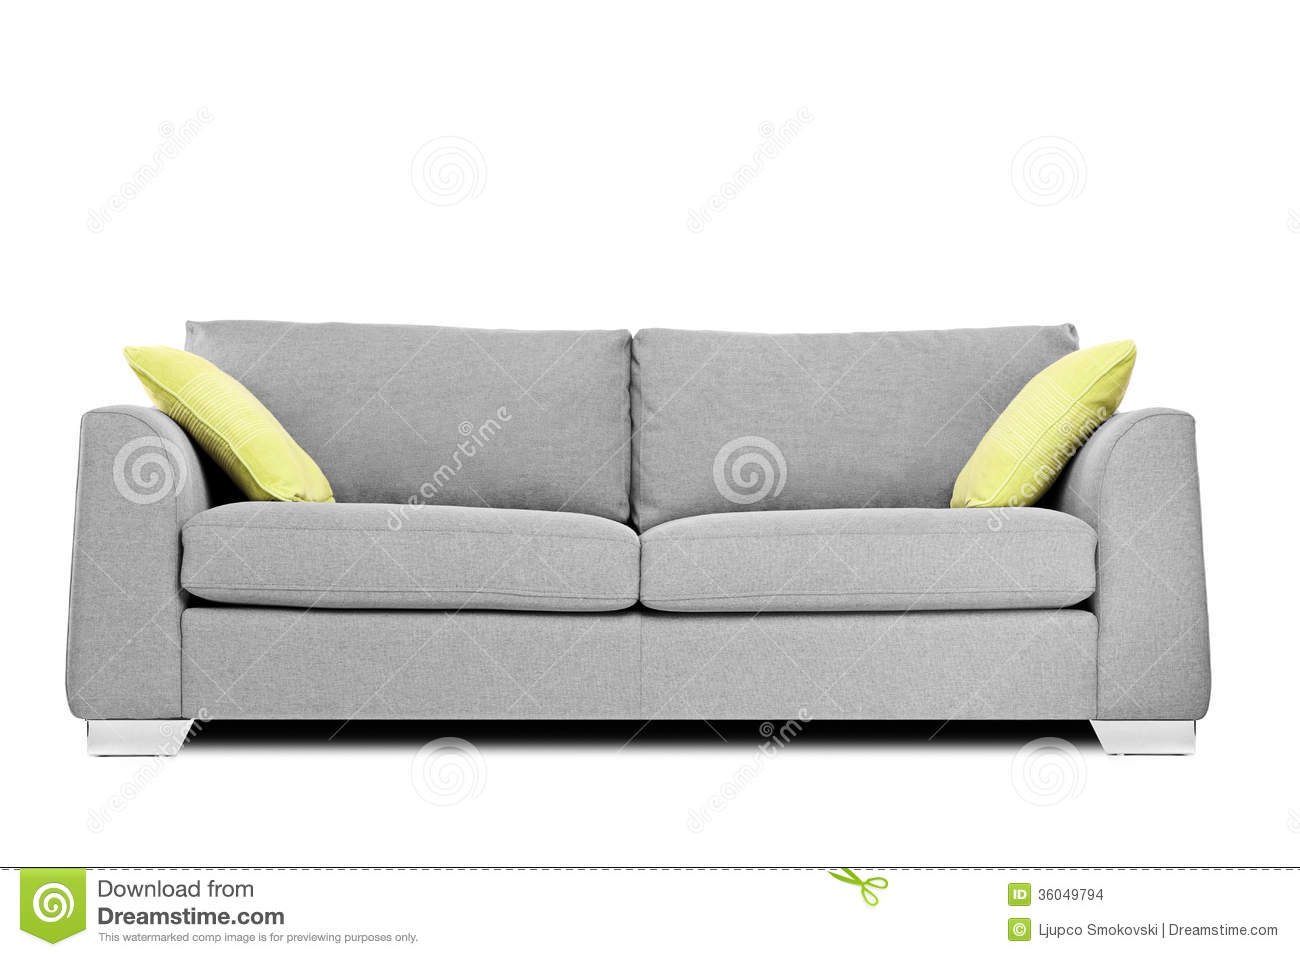 Modern Family Pillows On Couch : Studio Shot Of A Modern Couch With Pillows Stock Images - Image: 36049794